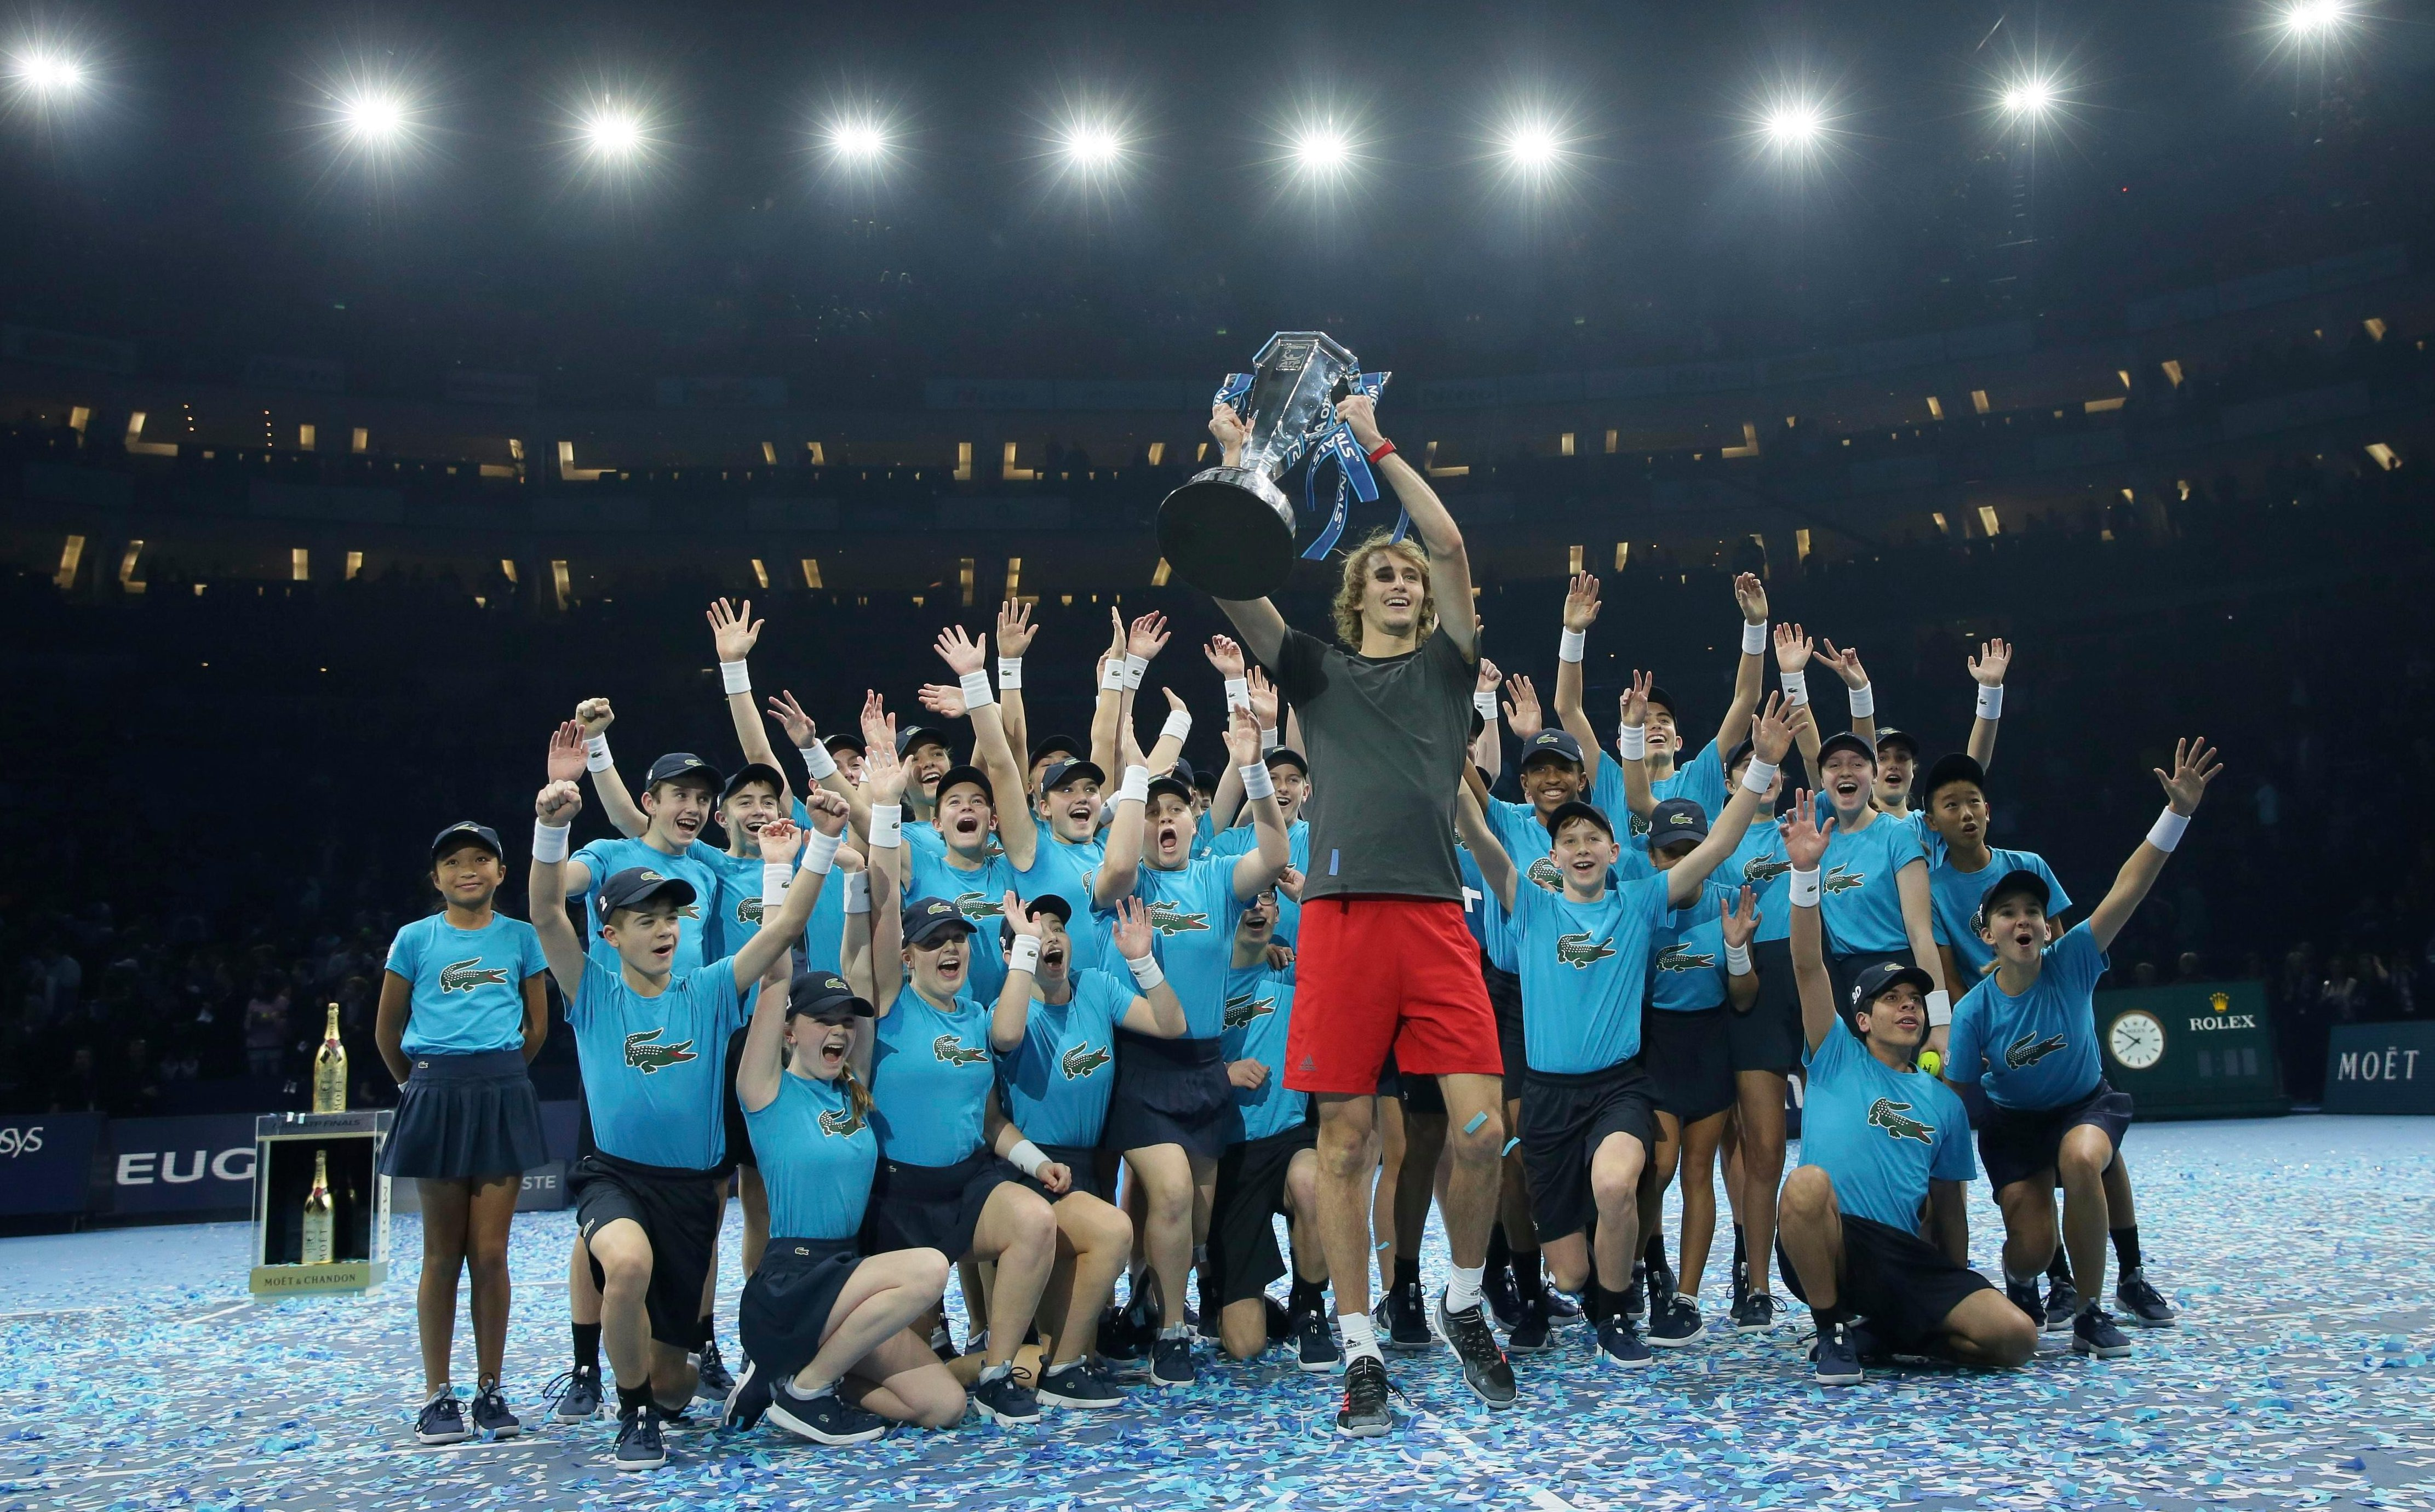 Alex Zverev enjoys being centre stage after truly announcing his arrival at the highest level